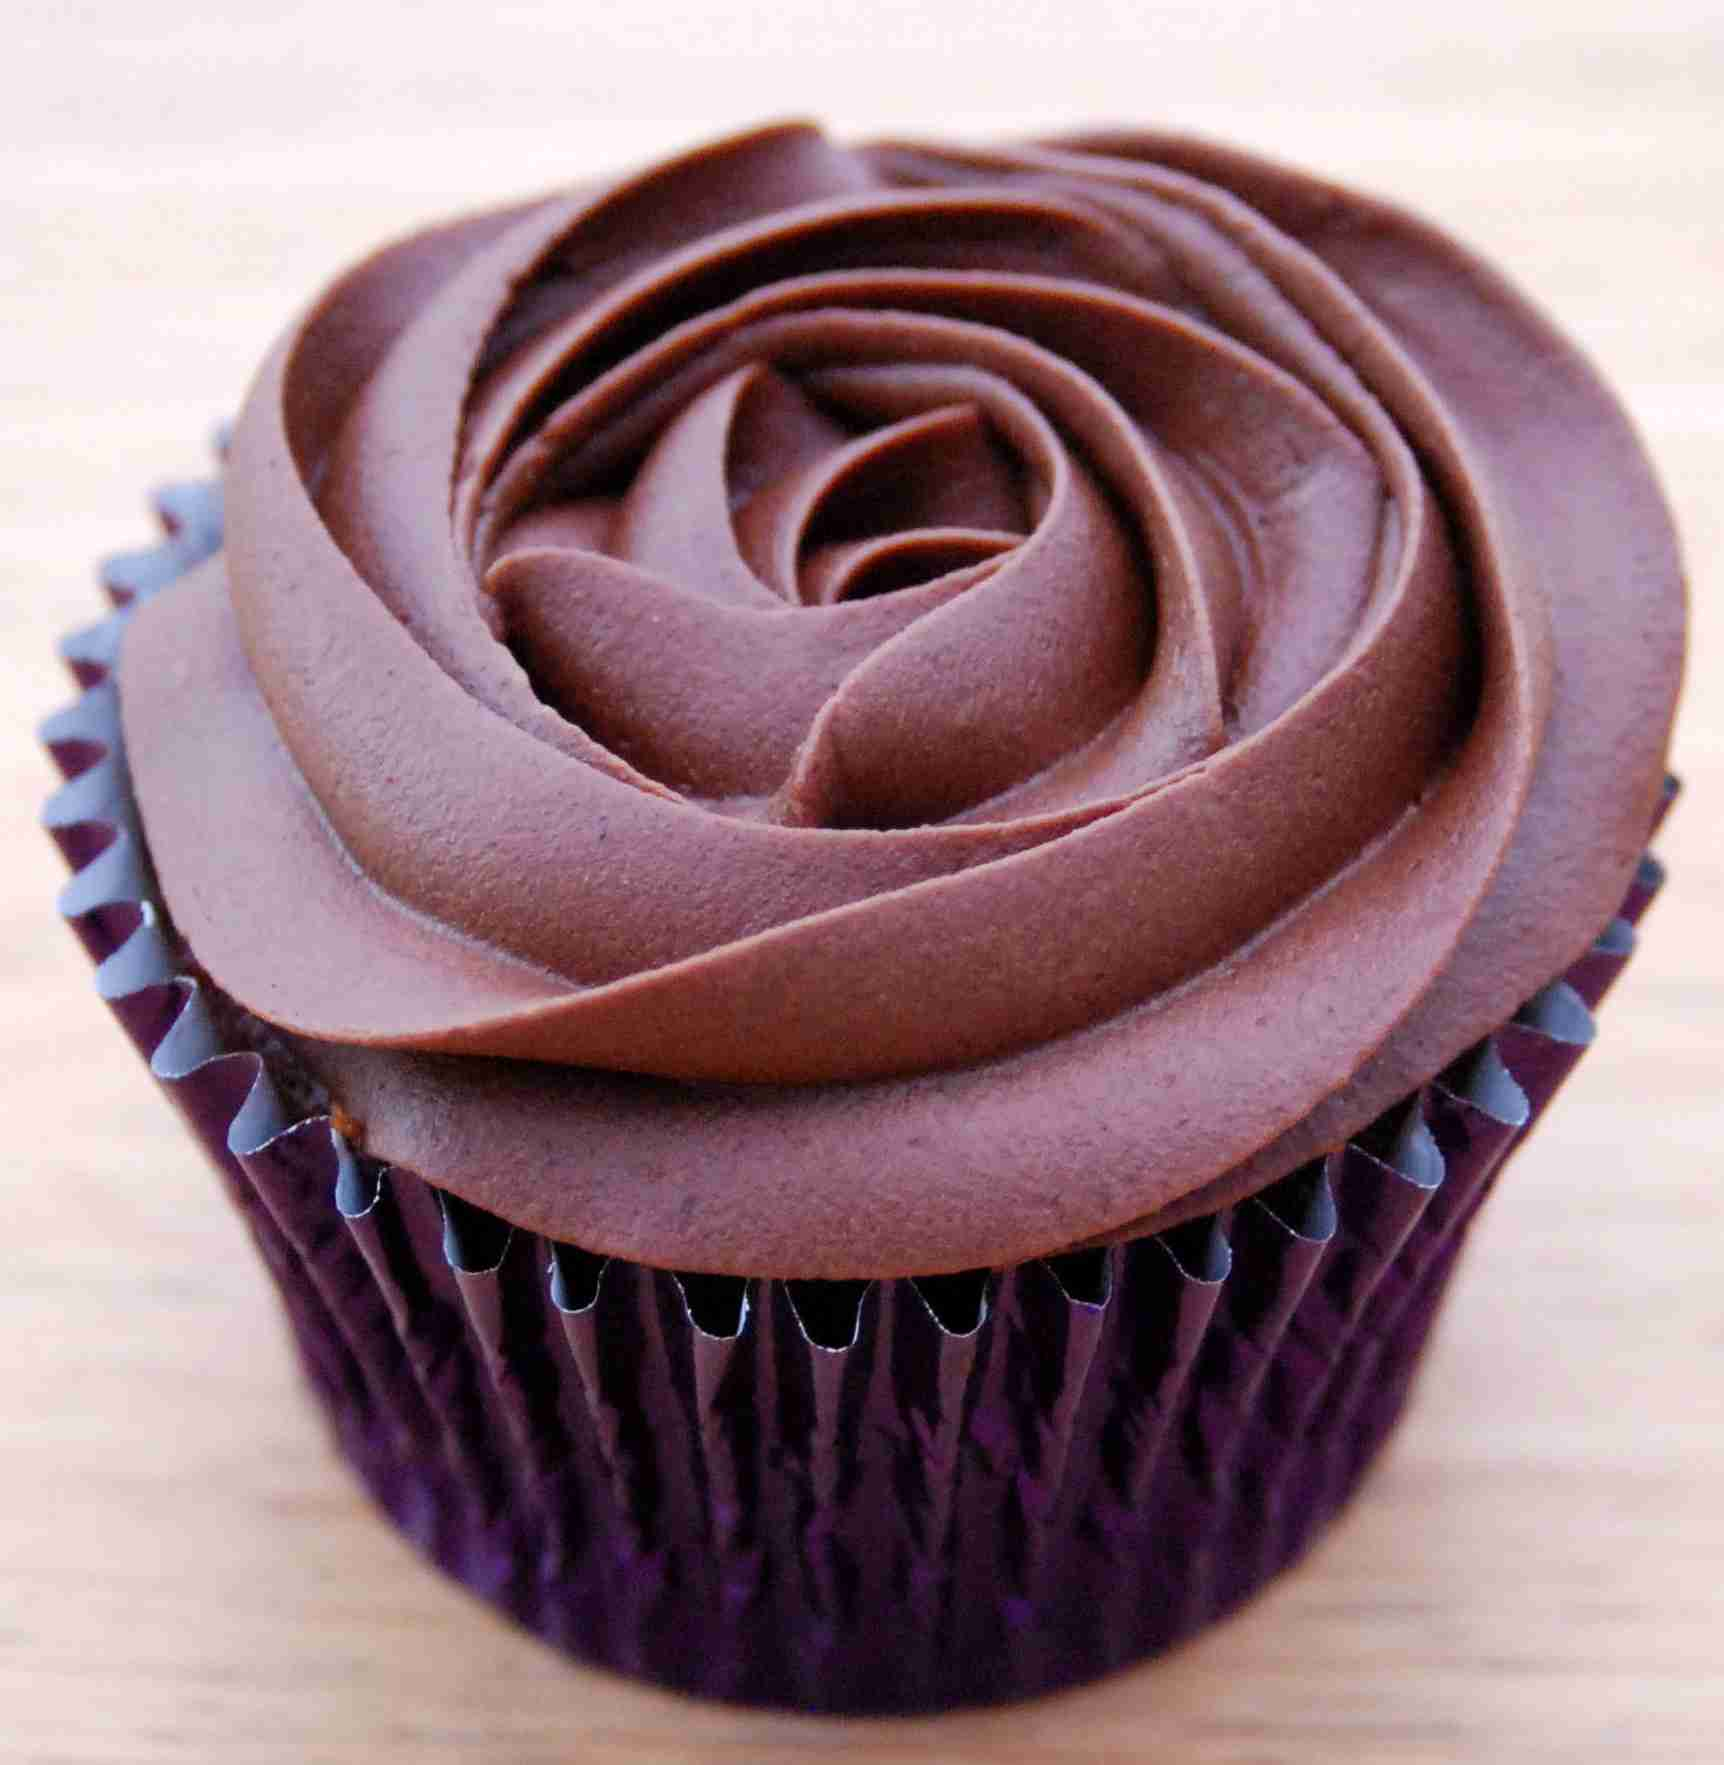 Chocolate Cupcakes with Rose Frosting